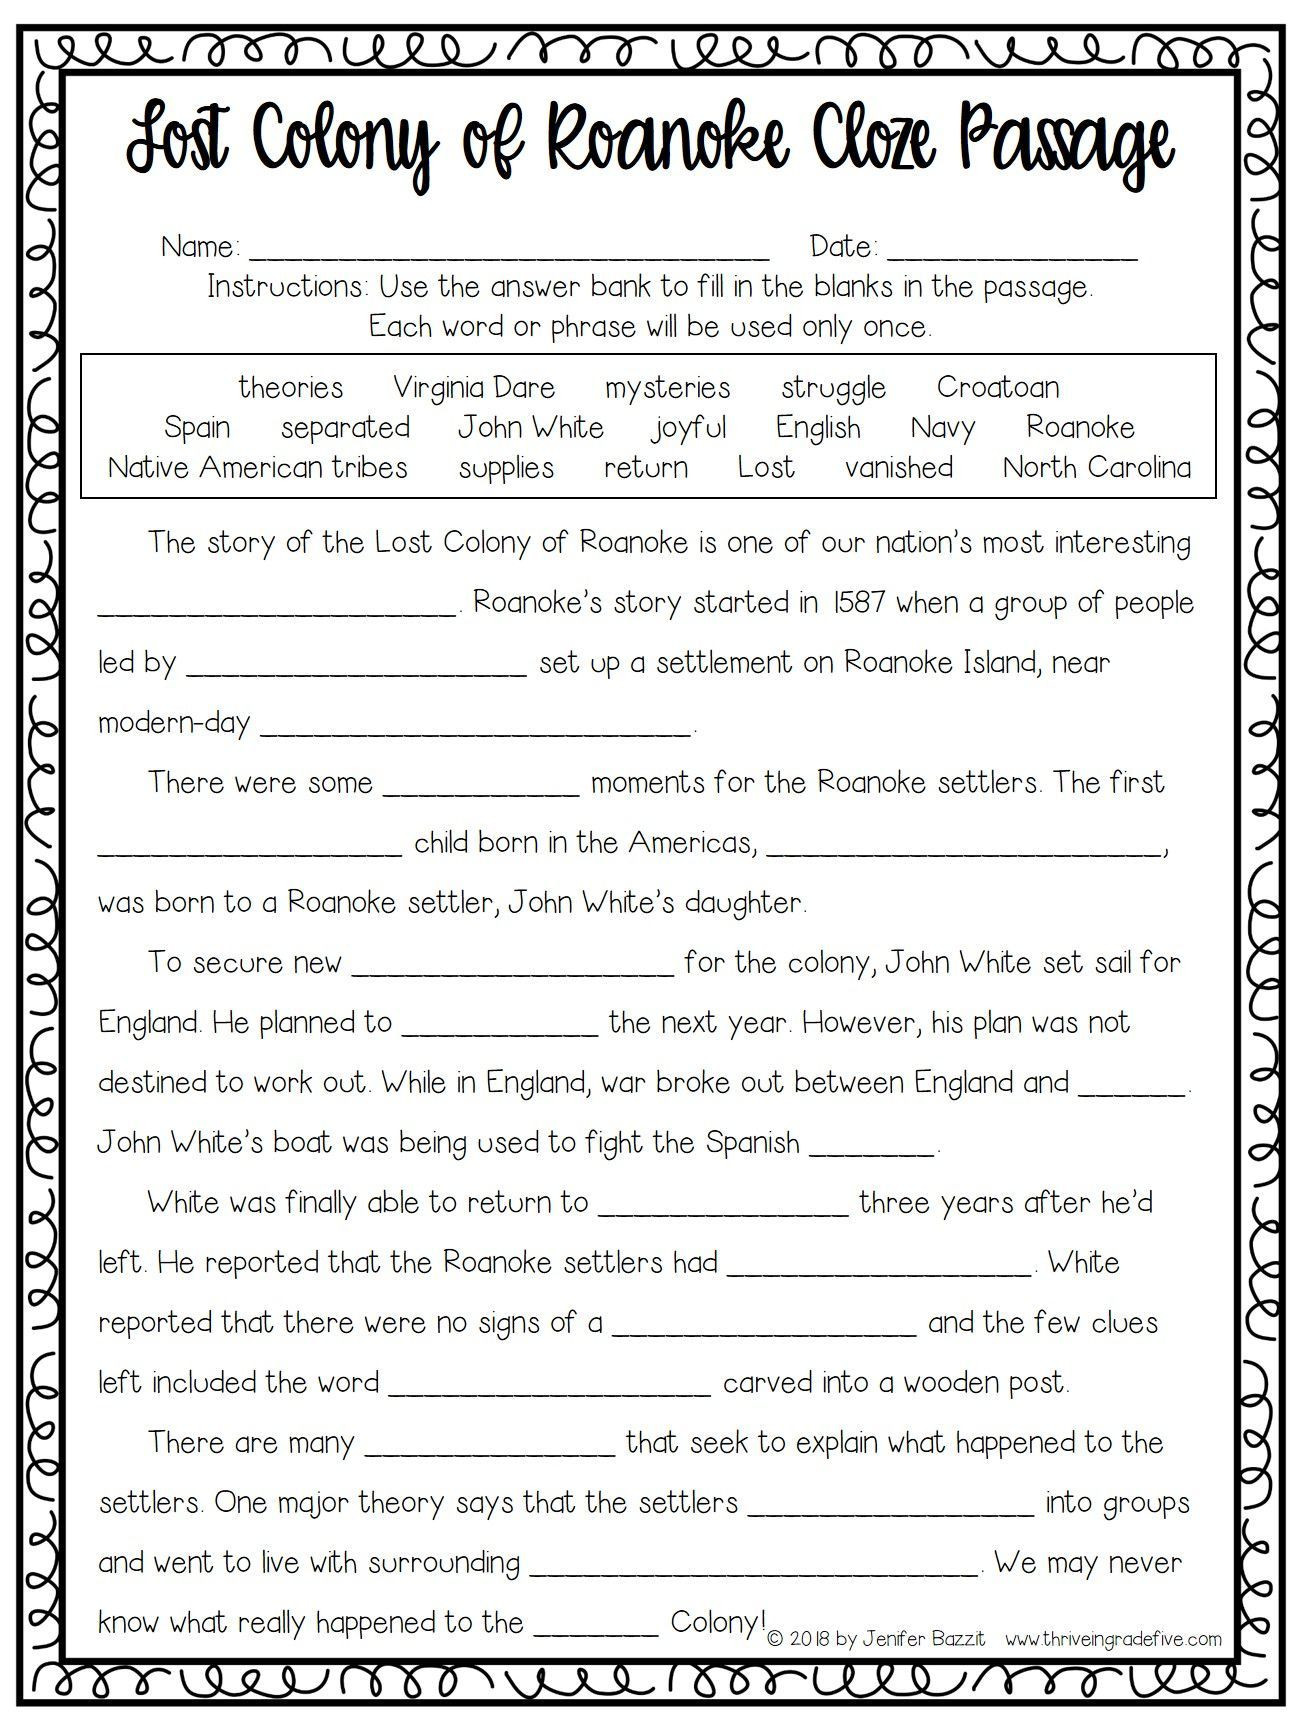 Jamestown Colony Worksheet 5th Grade Lost Colony Of Roanoke Activity Free